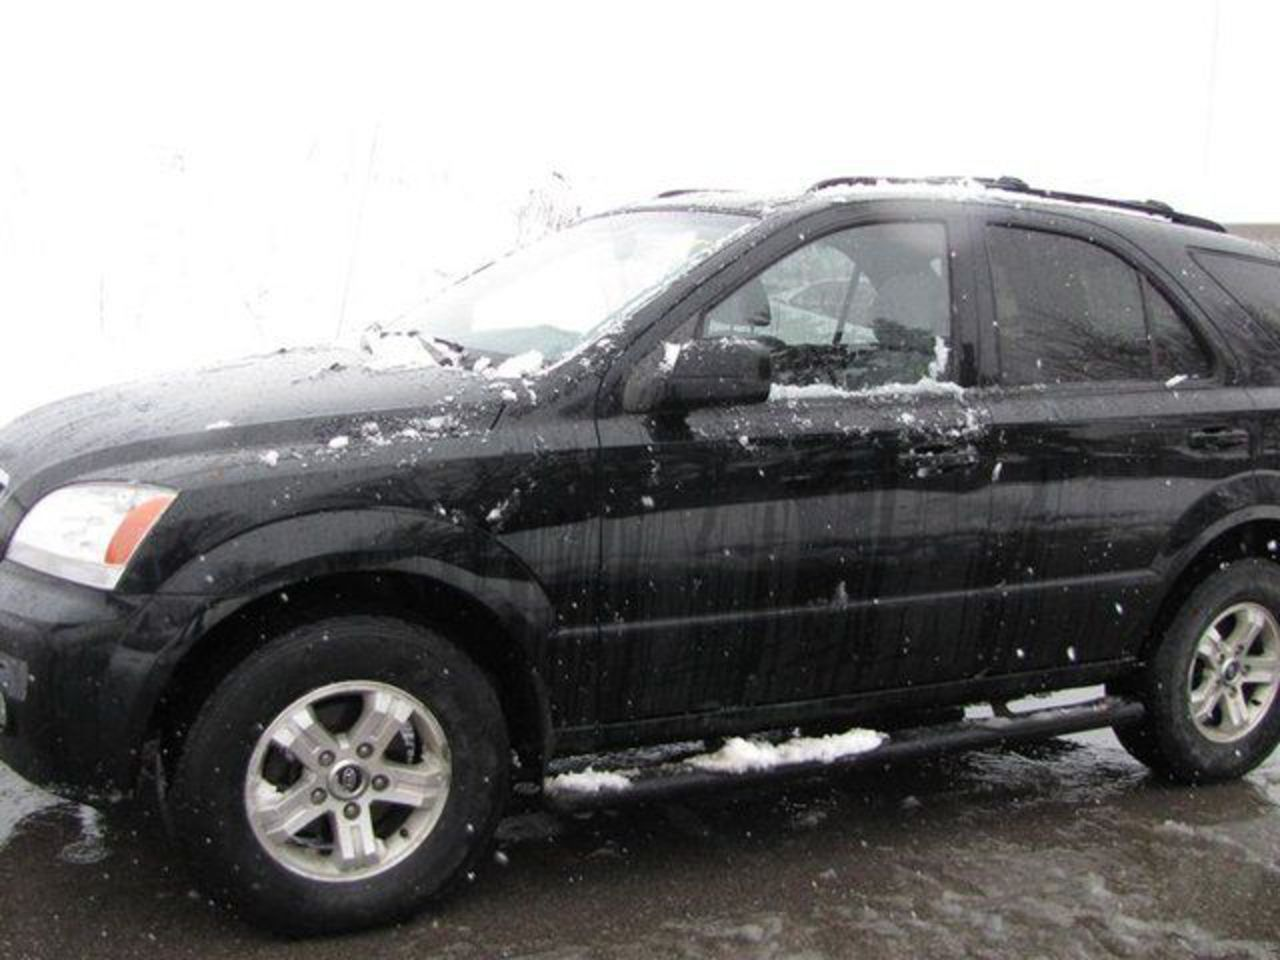 2005 Kia Sorento LX - Milton, Ontario Used Car For Sale